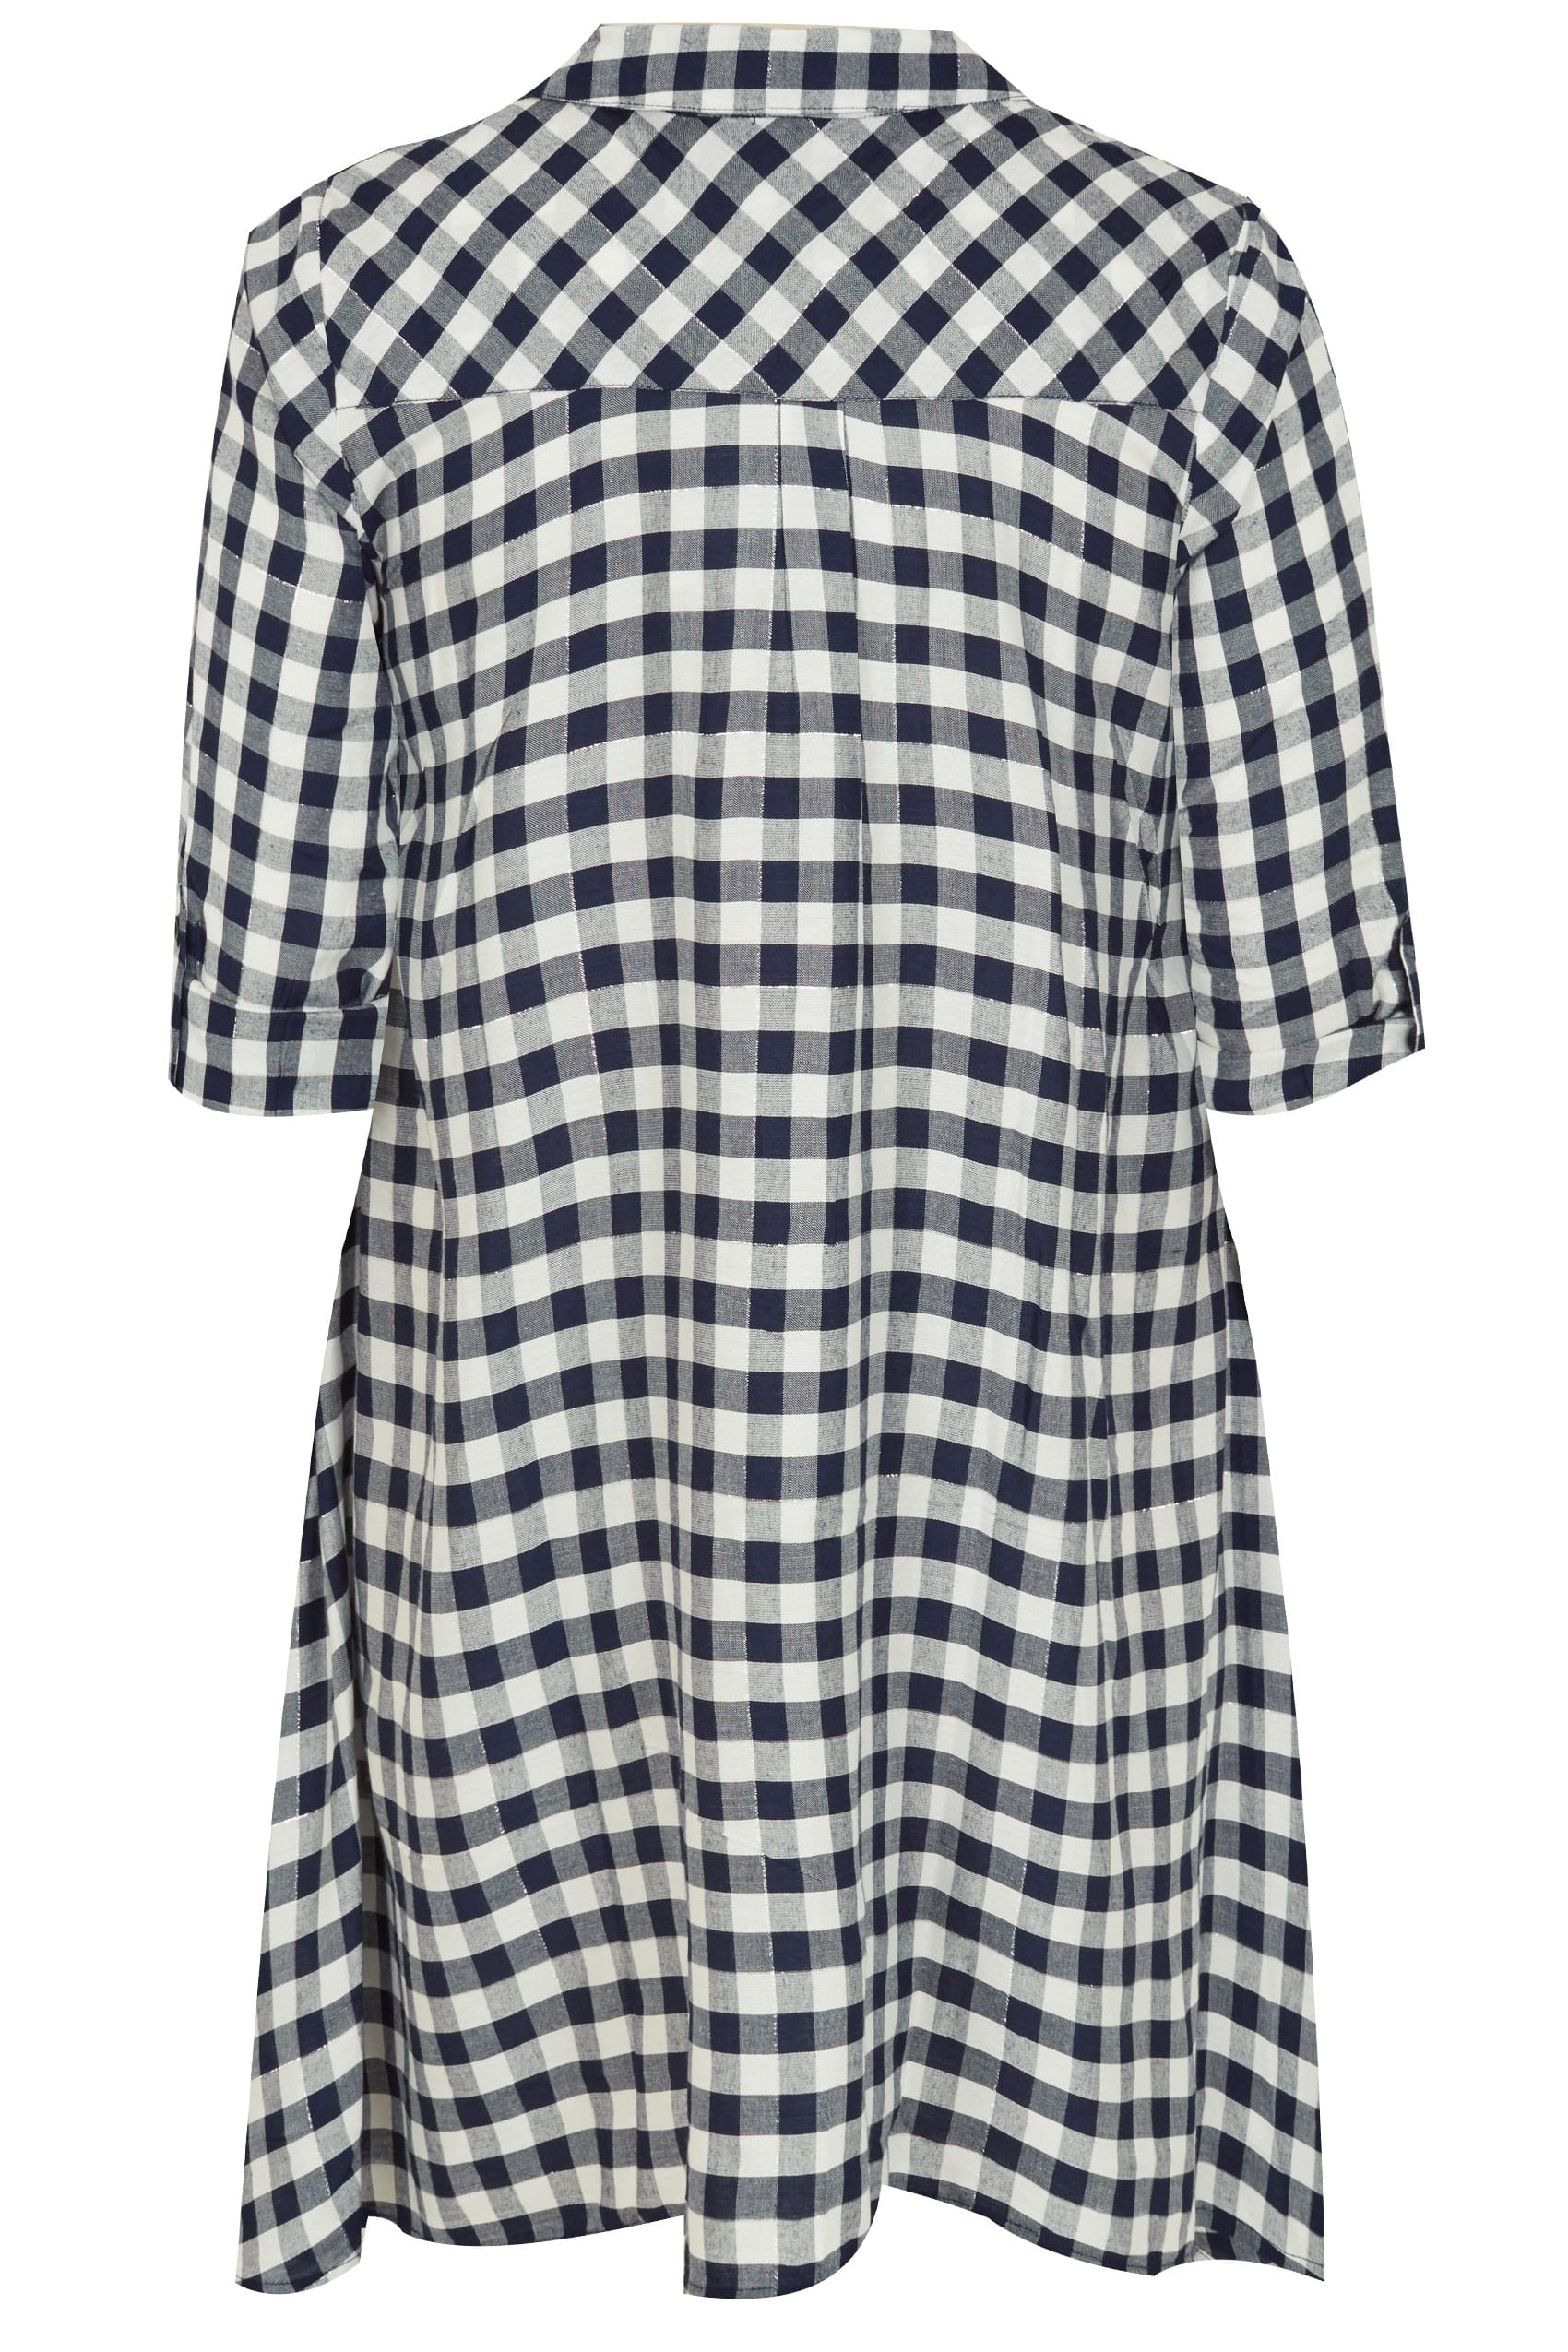 navy white asymmetric checked shirt with metallic thread plus size 16 to 36. Black Bedroom Furniture Sets. Home Design Ideas